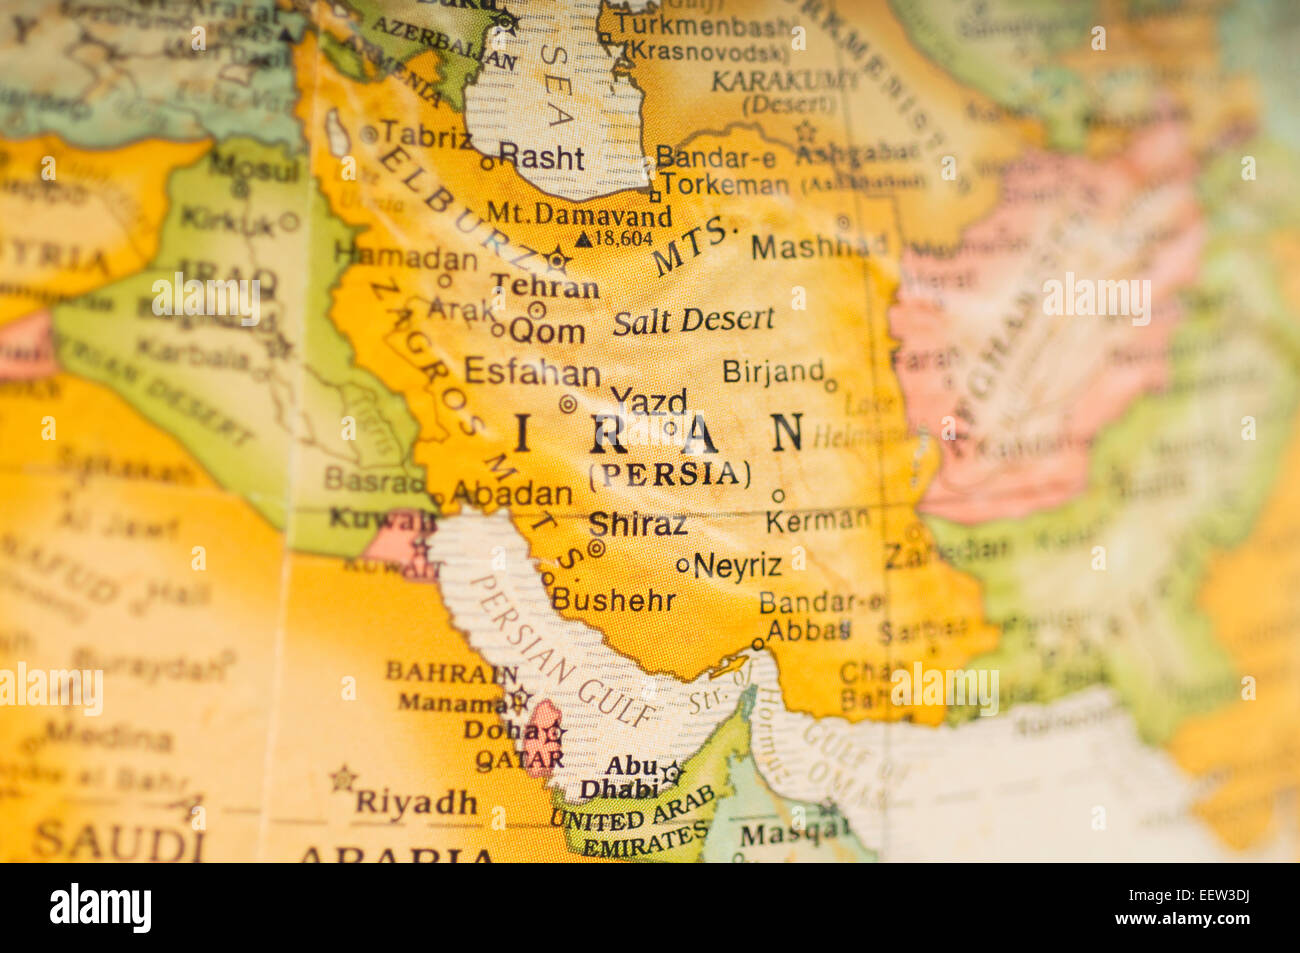 Map of Iran and the Middle East